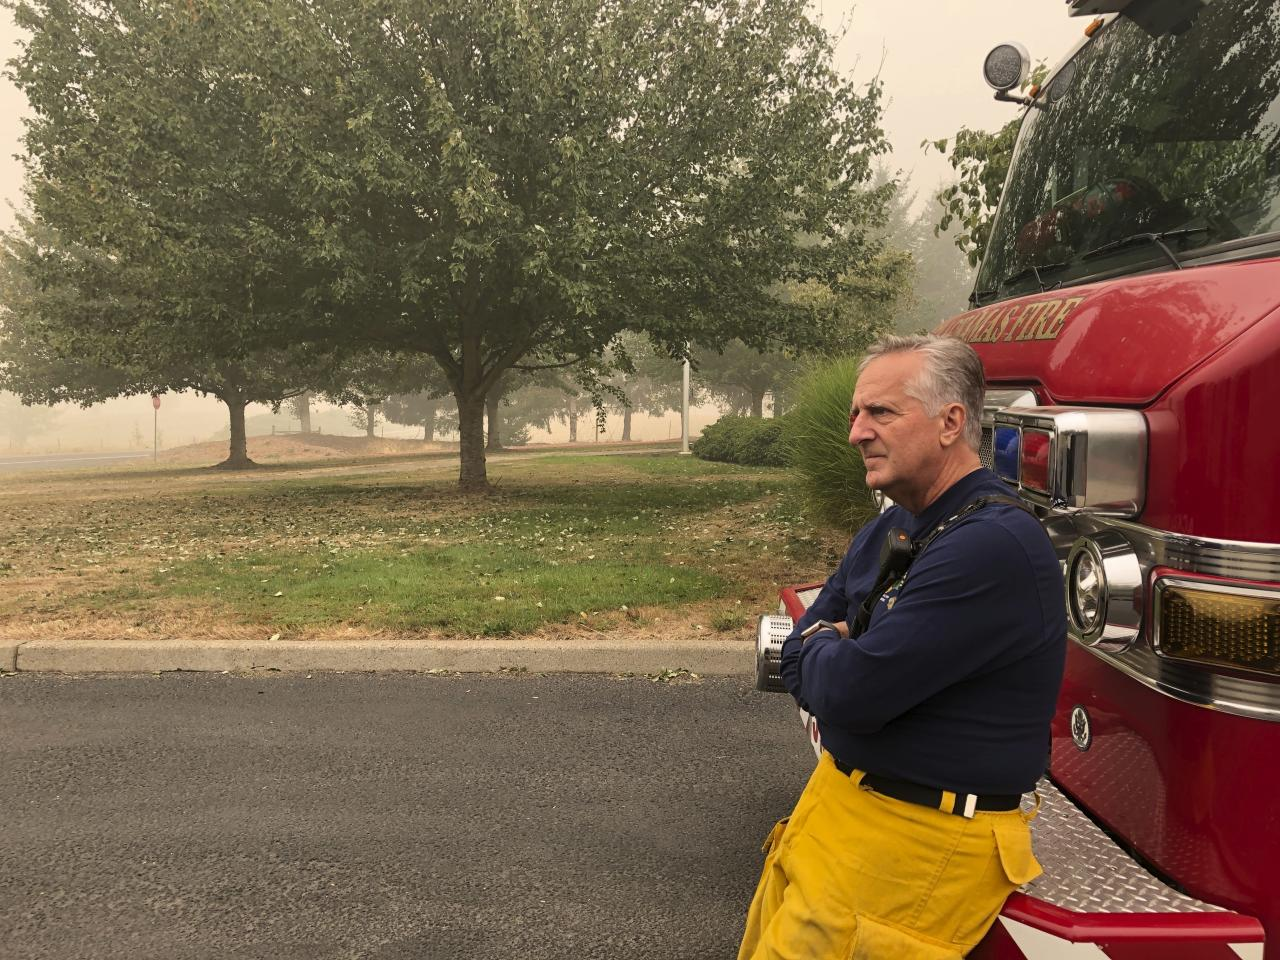 Firefighters battle exhaustion along with wildfire flames